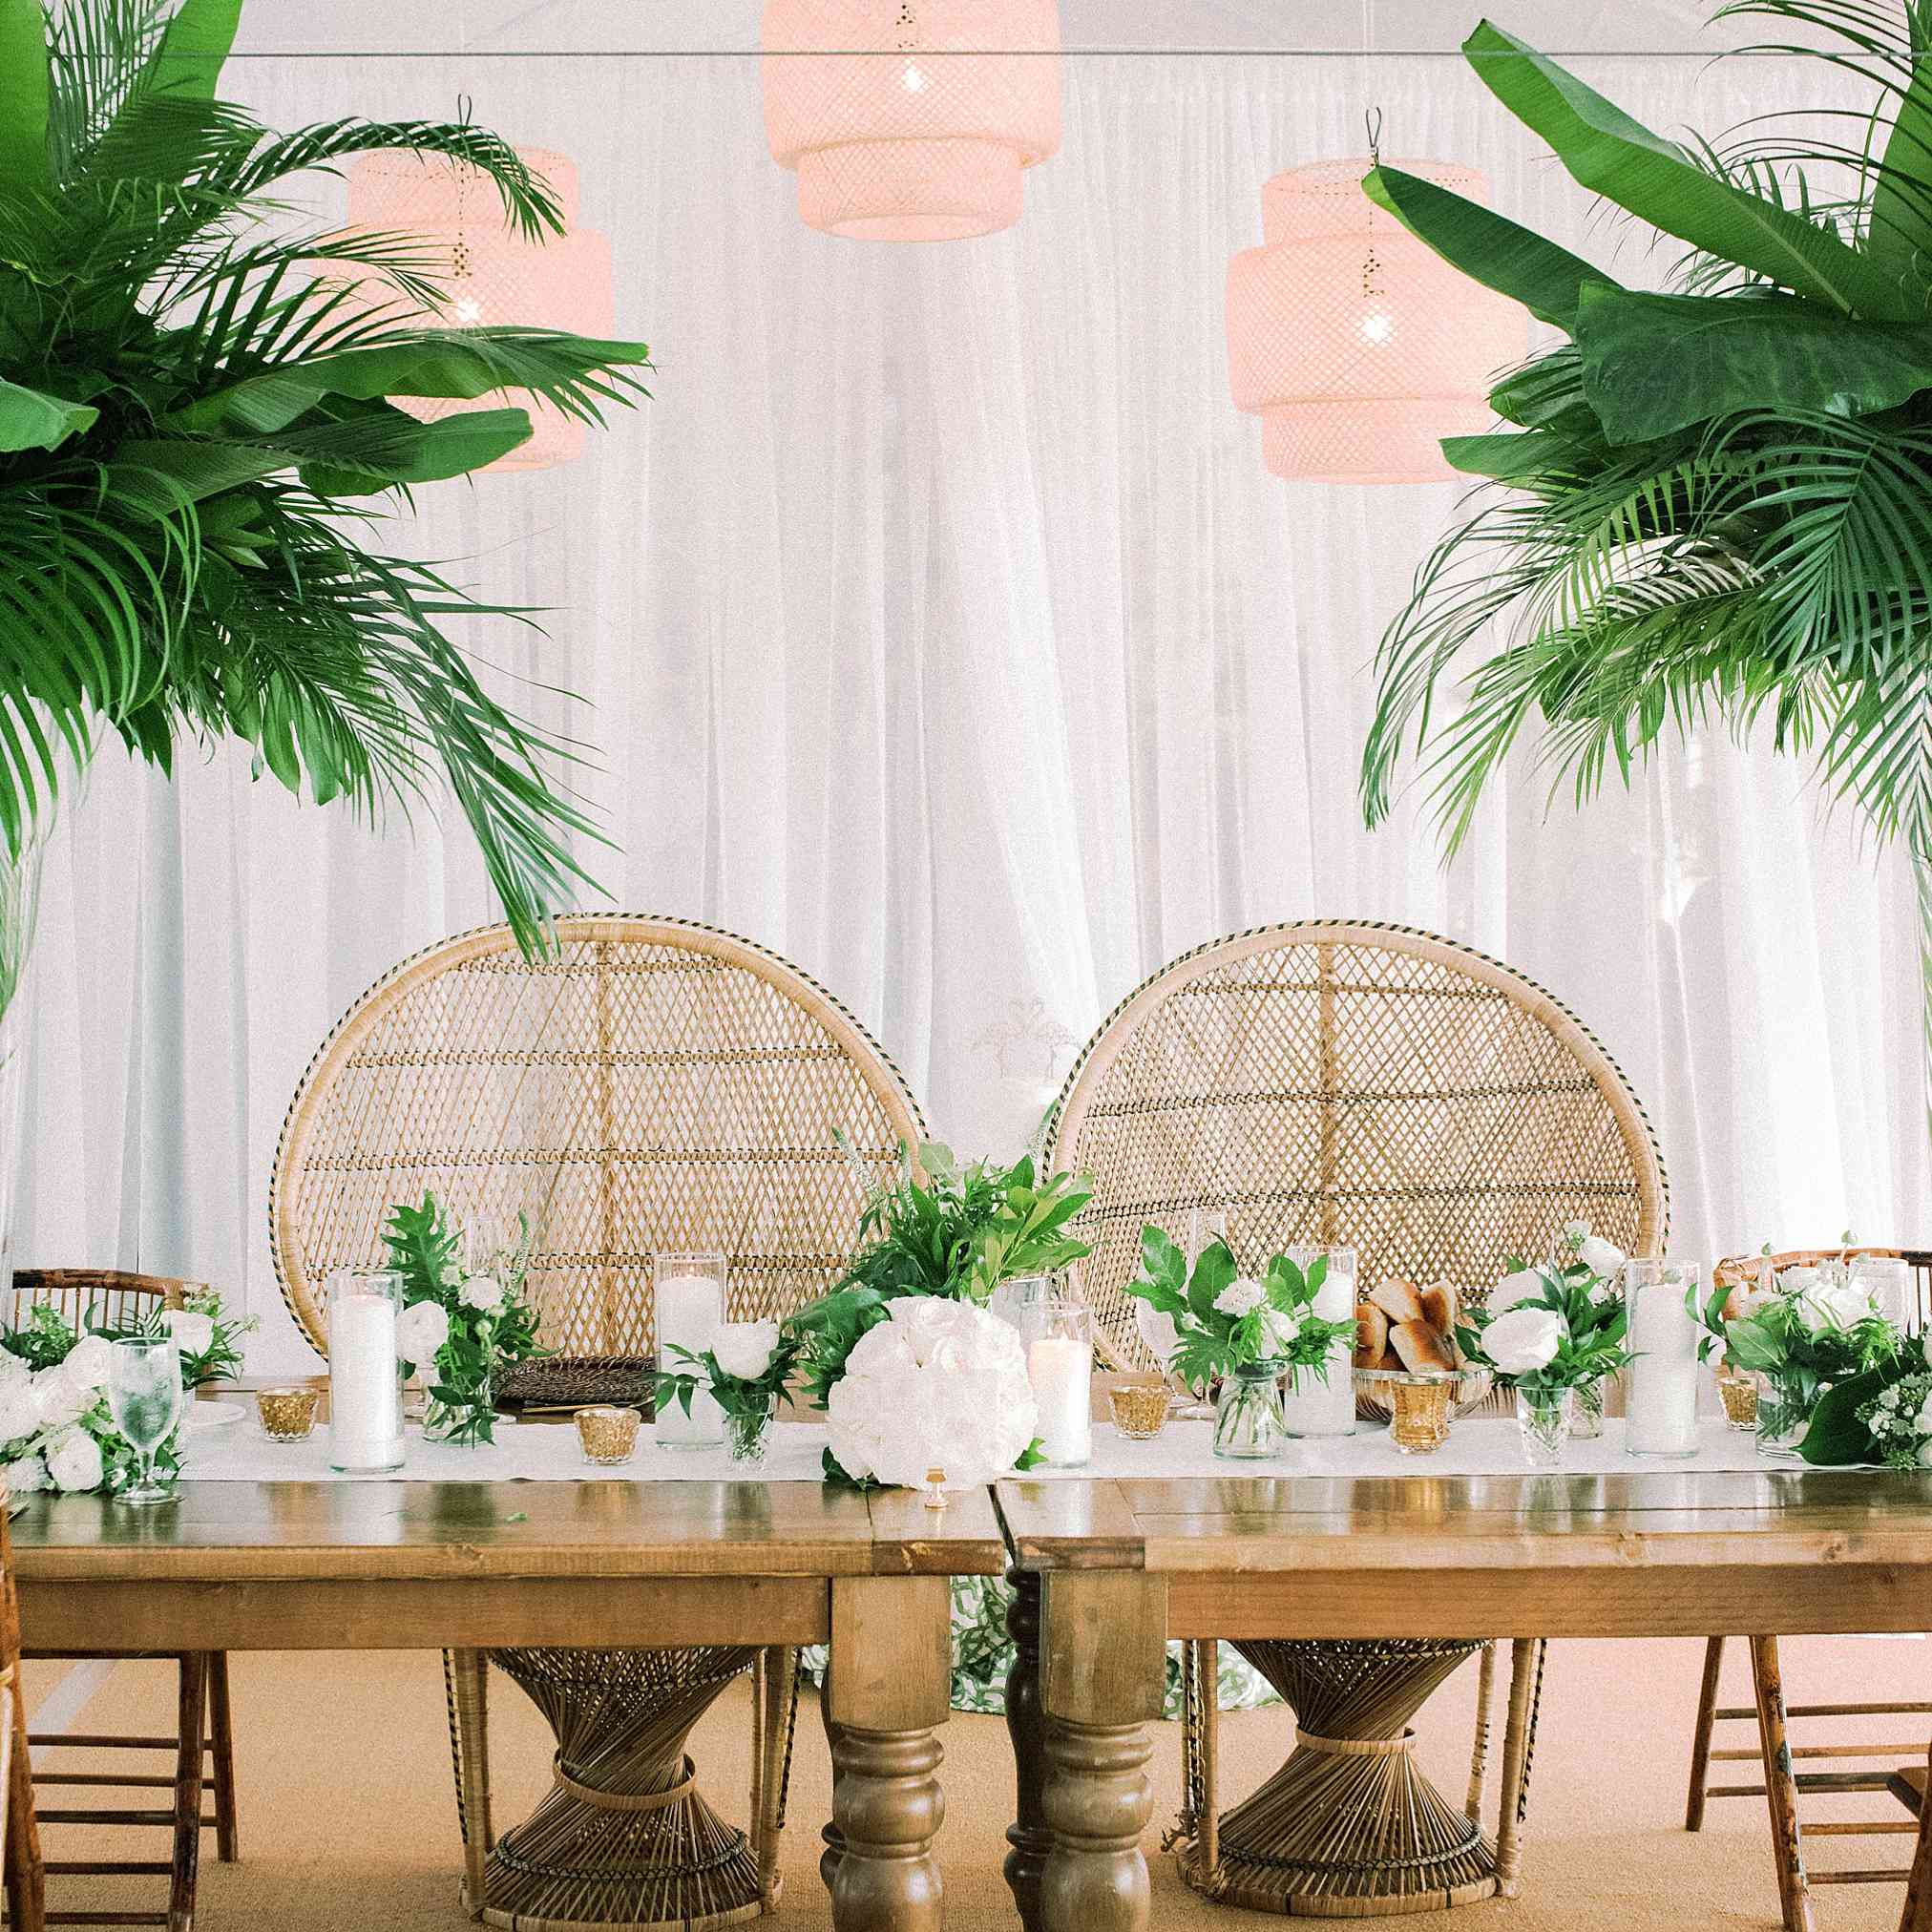 Table with statement rattan chairs and palm accents